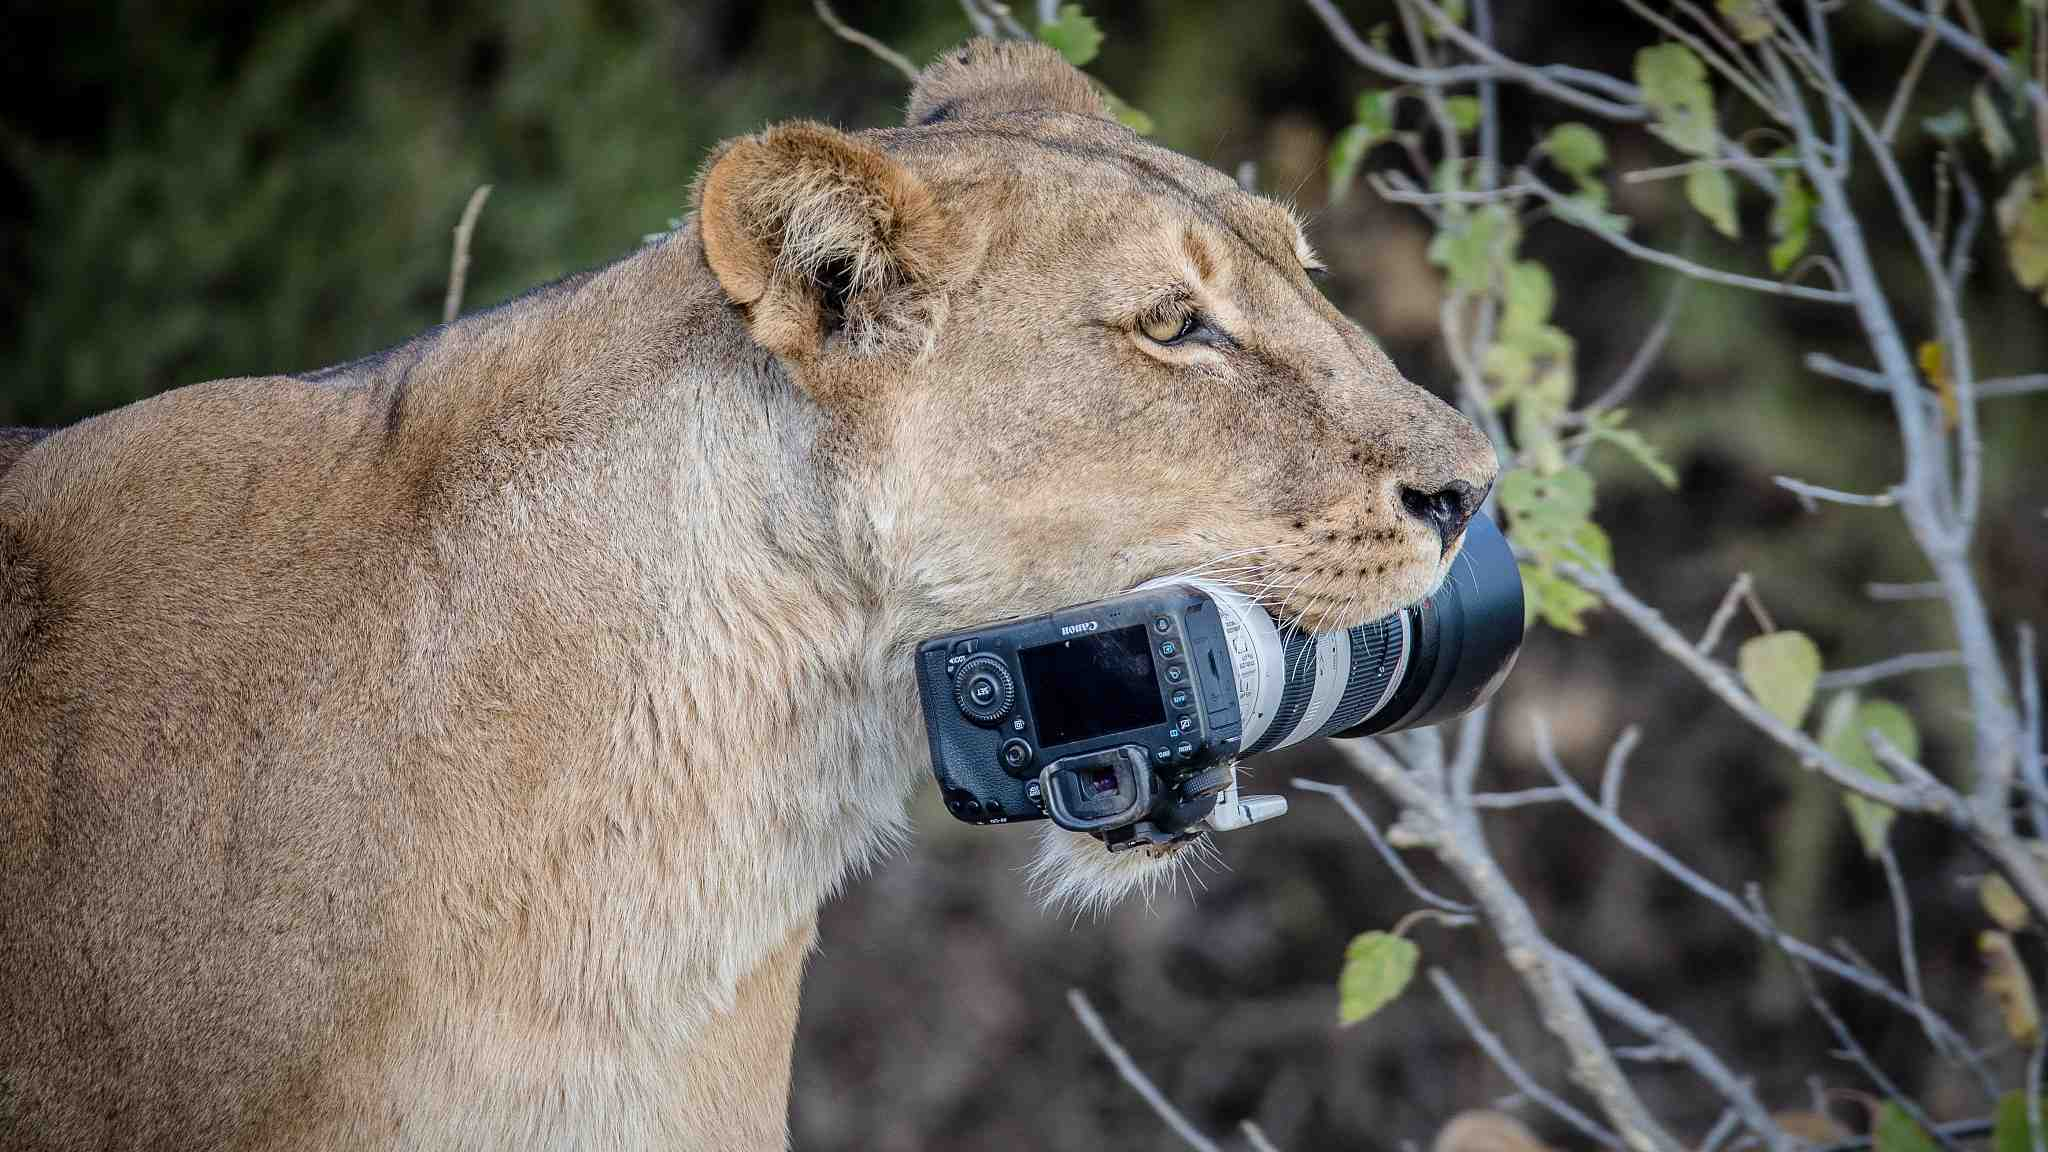 Lions turn photographer's camera into chew toy